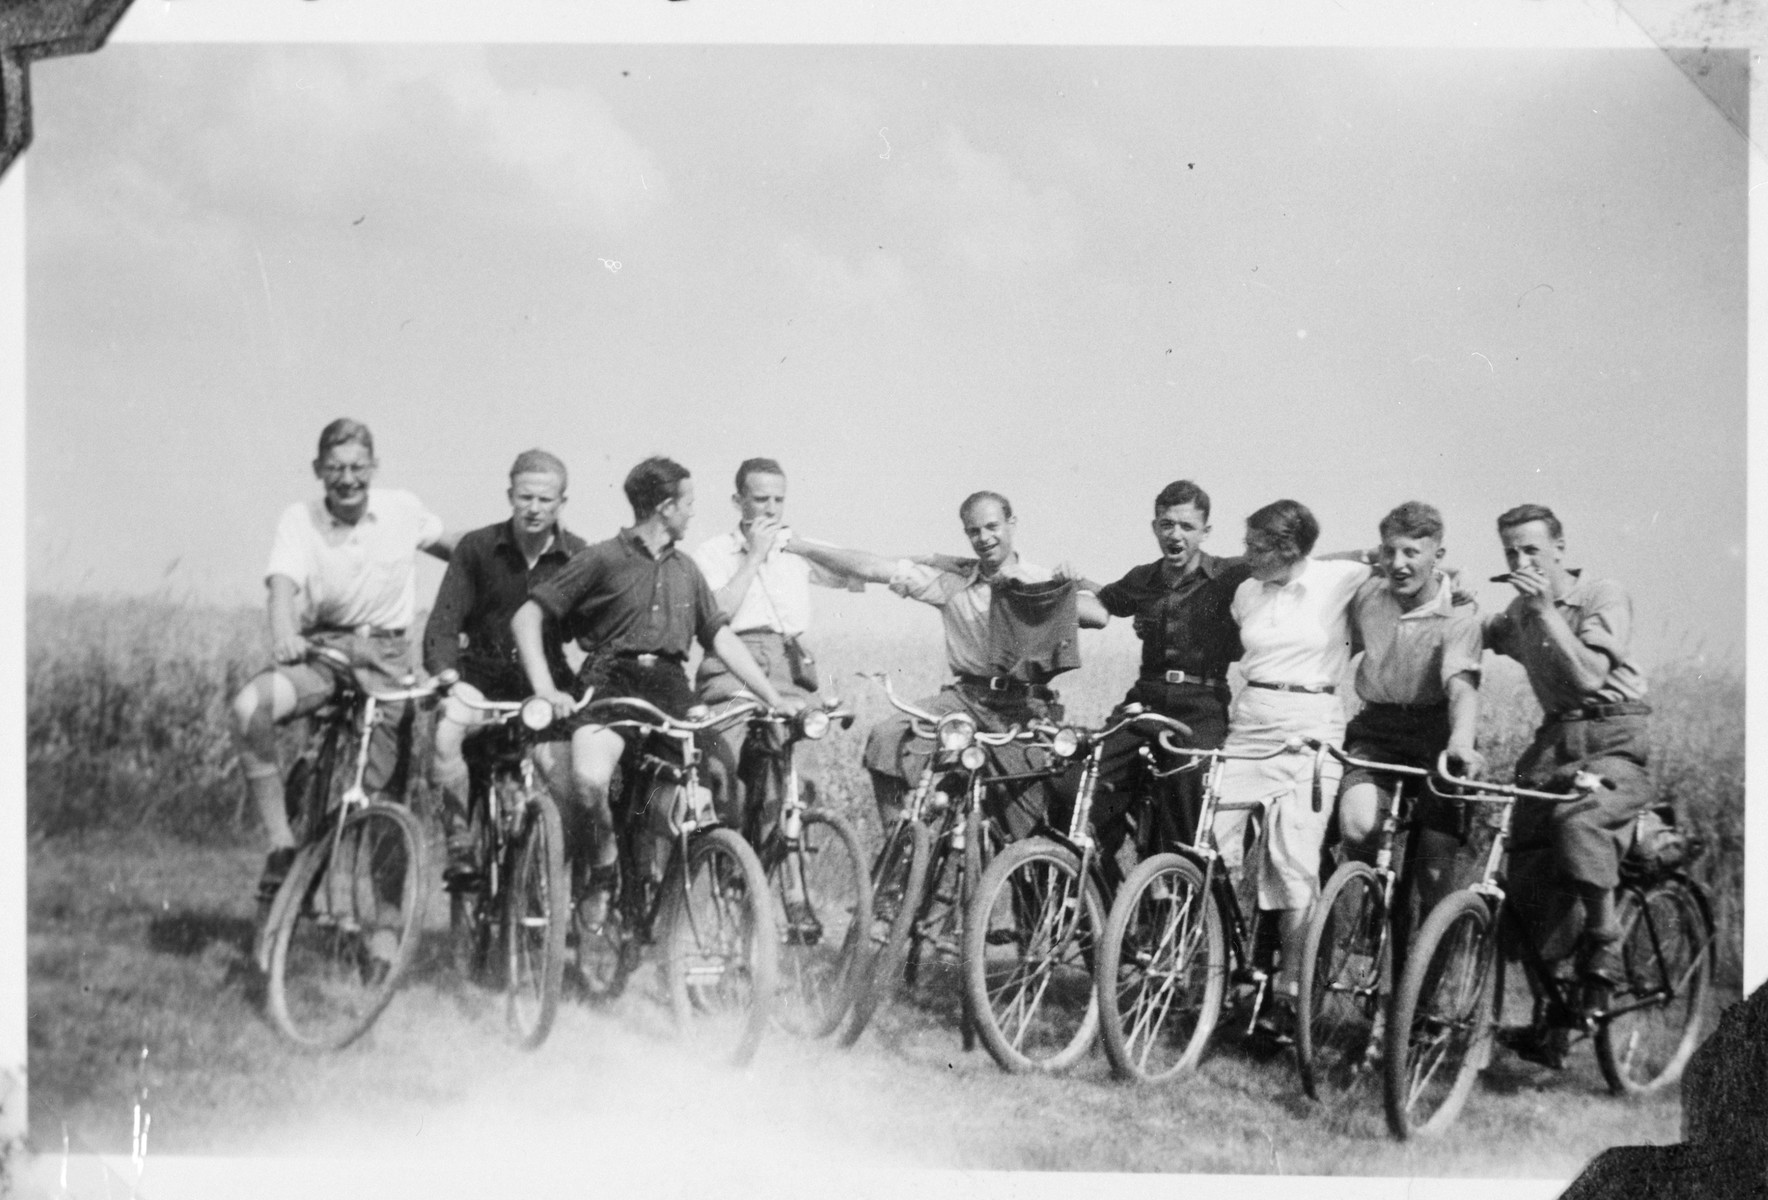 Group portrait of young students from the Gross Breesen vocational farm on a bicycle outing.   Pictured second from the right is the donor, George Landecker.